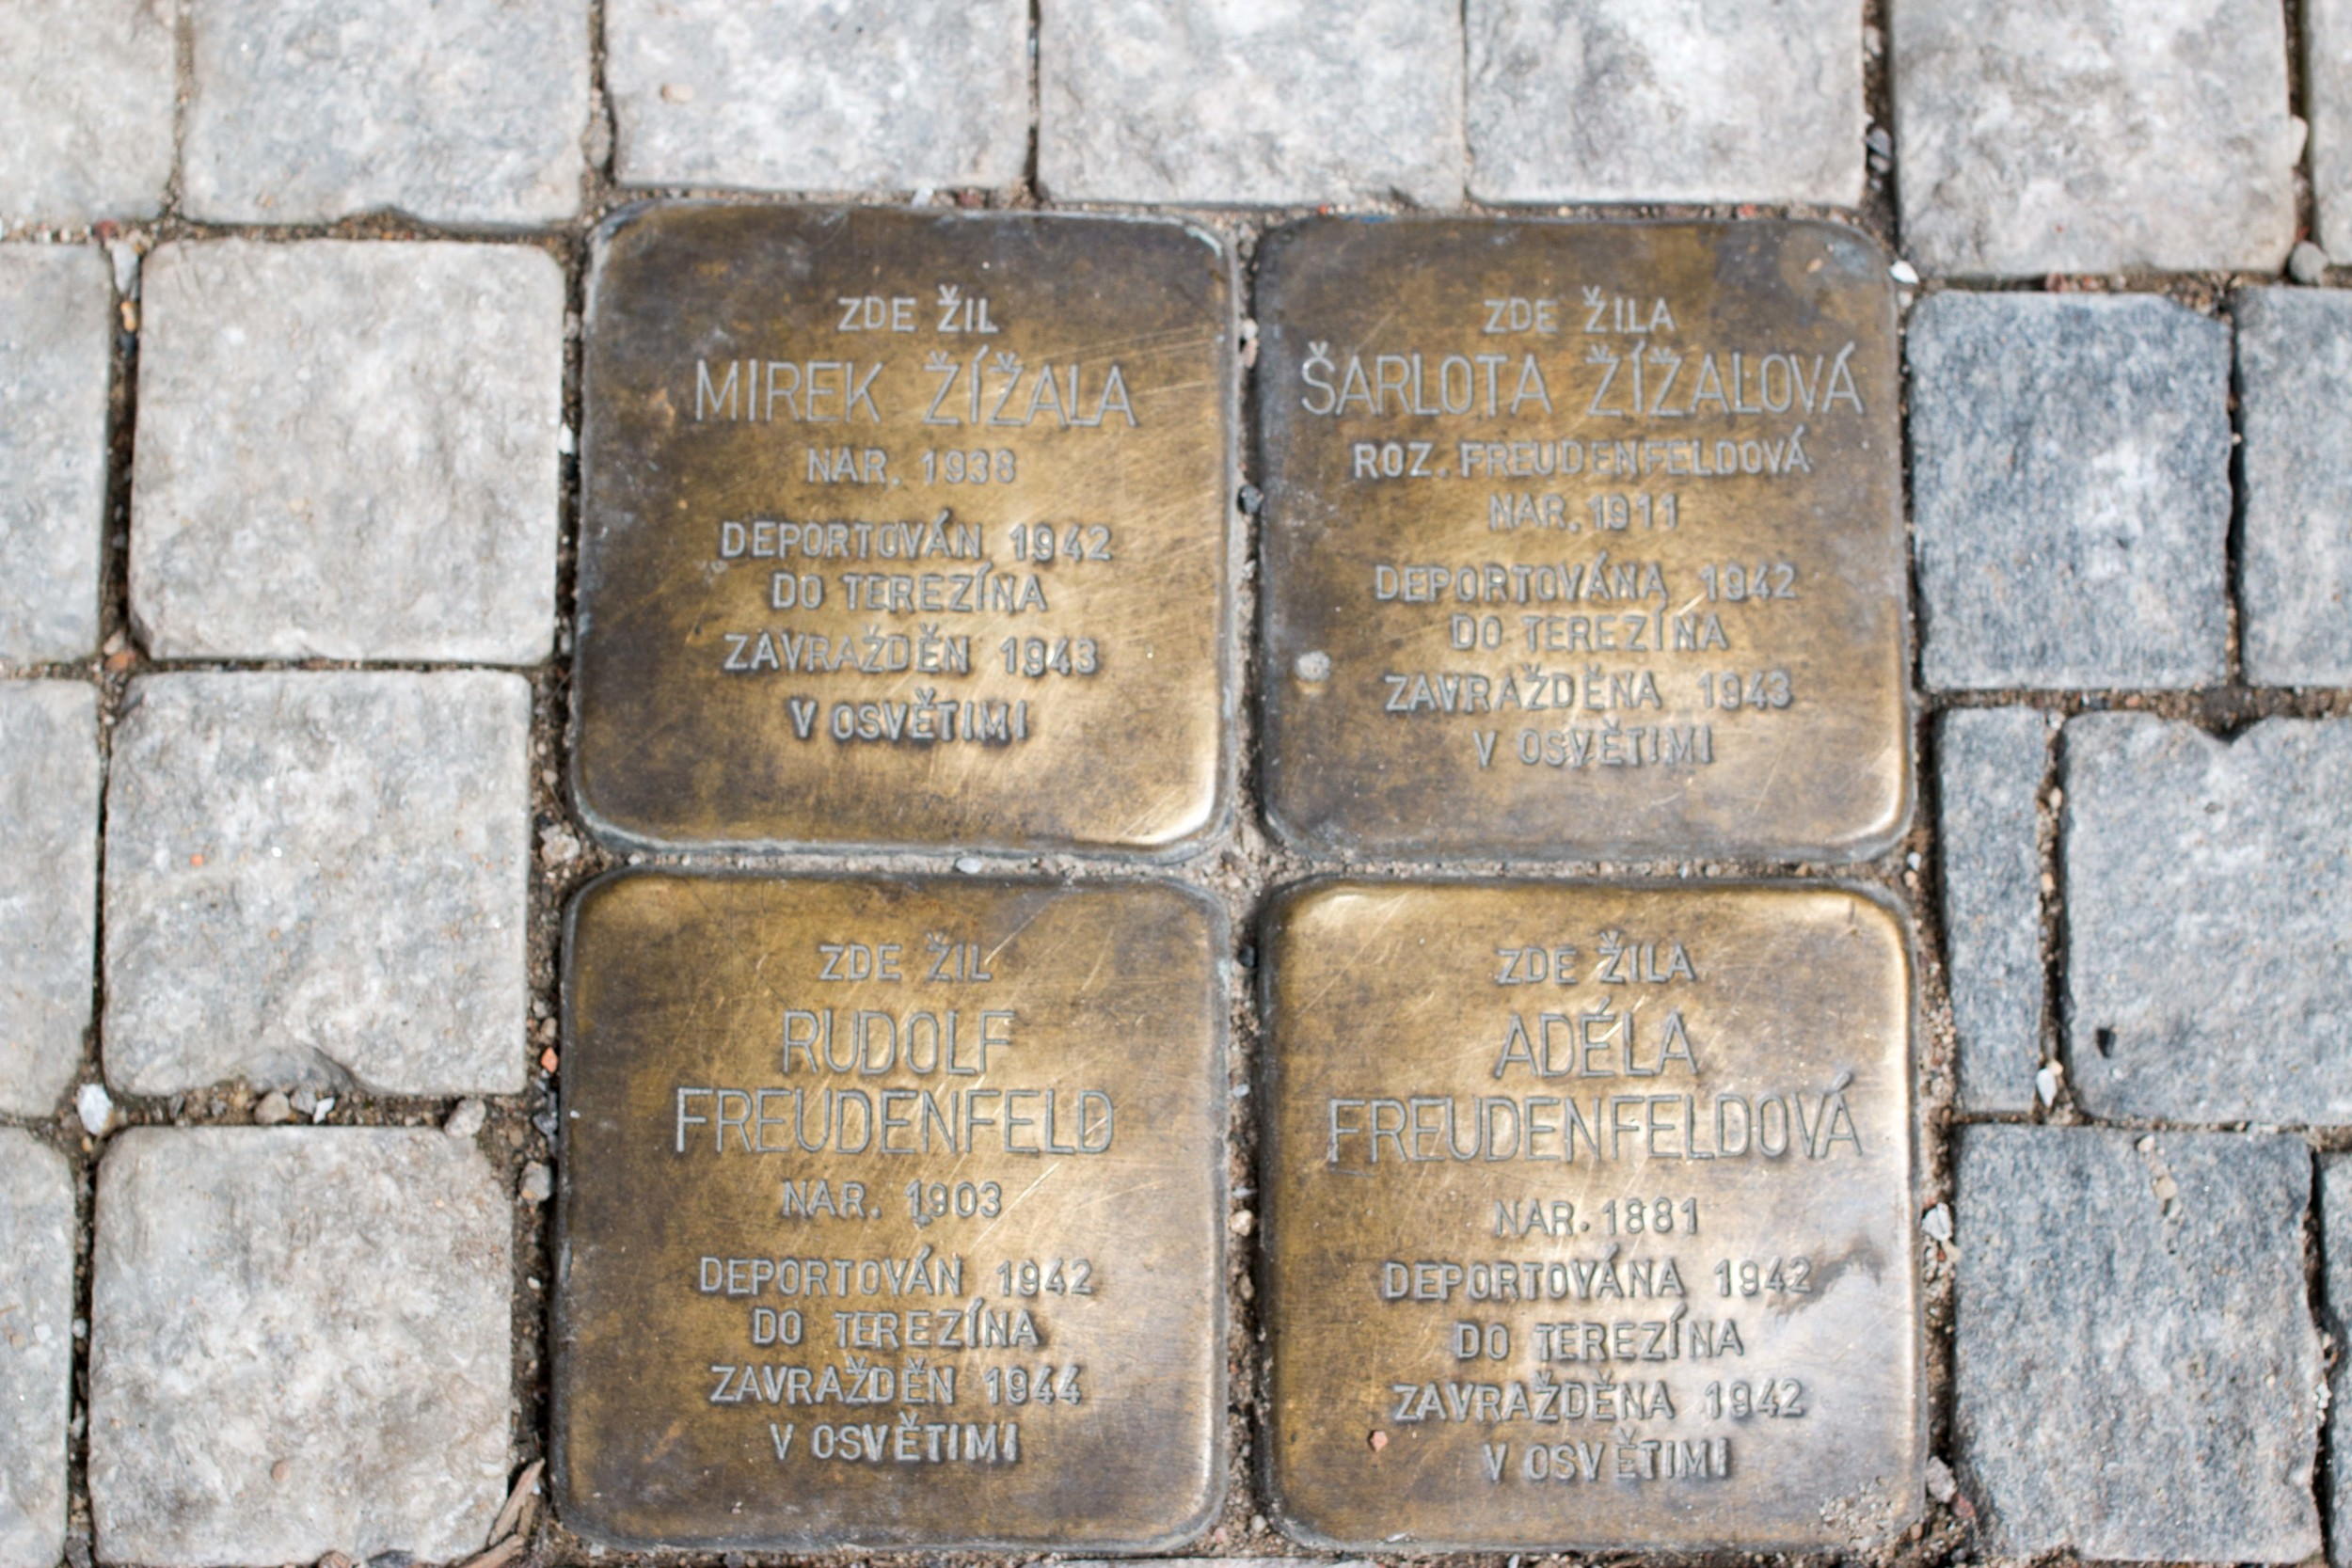 Prague. Two couples deported in 1942 to Theresenstadt before later being moved to, and murdered at, Auschwitz.